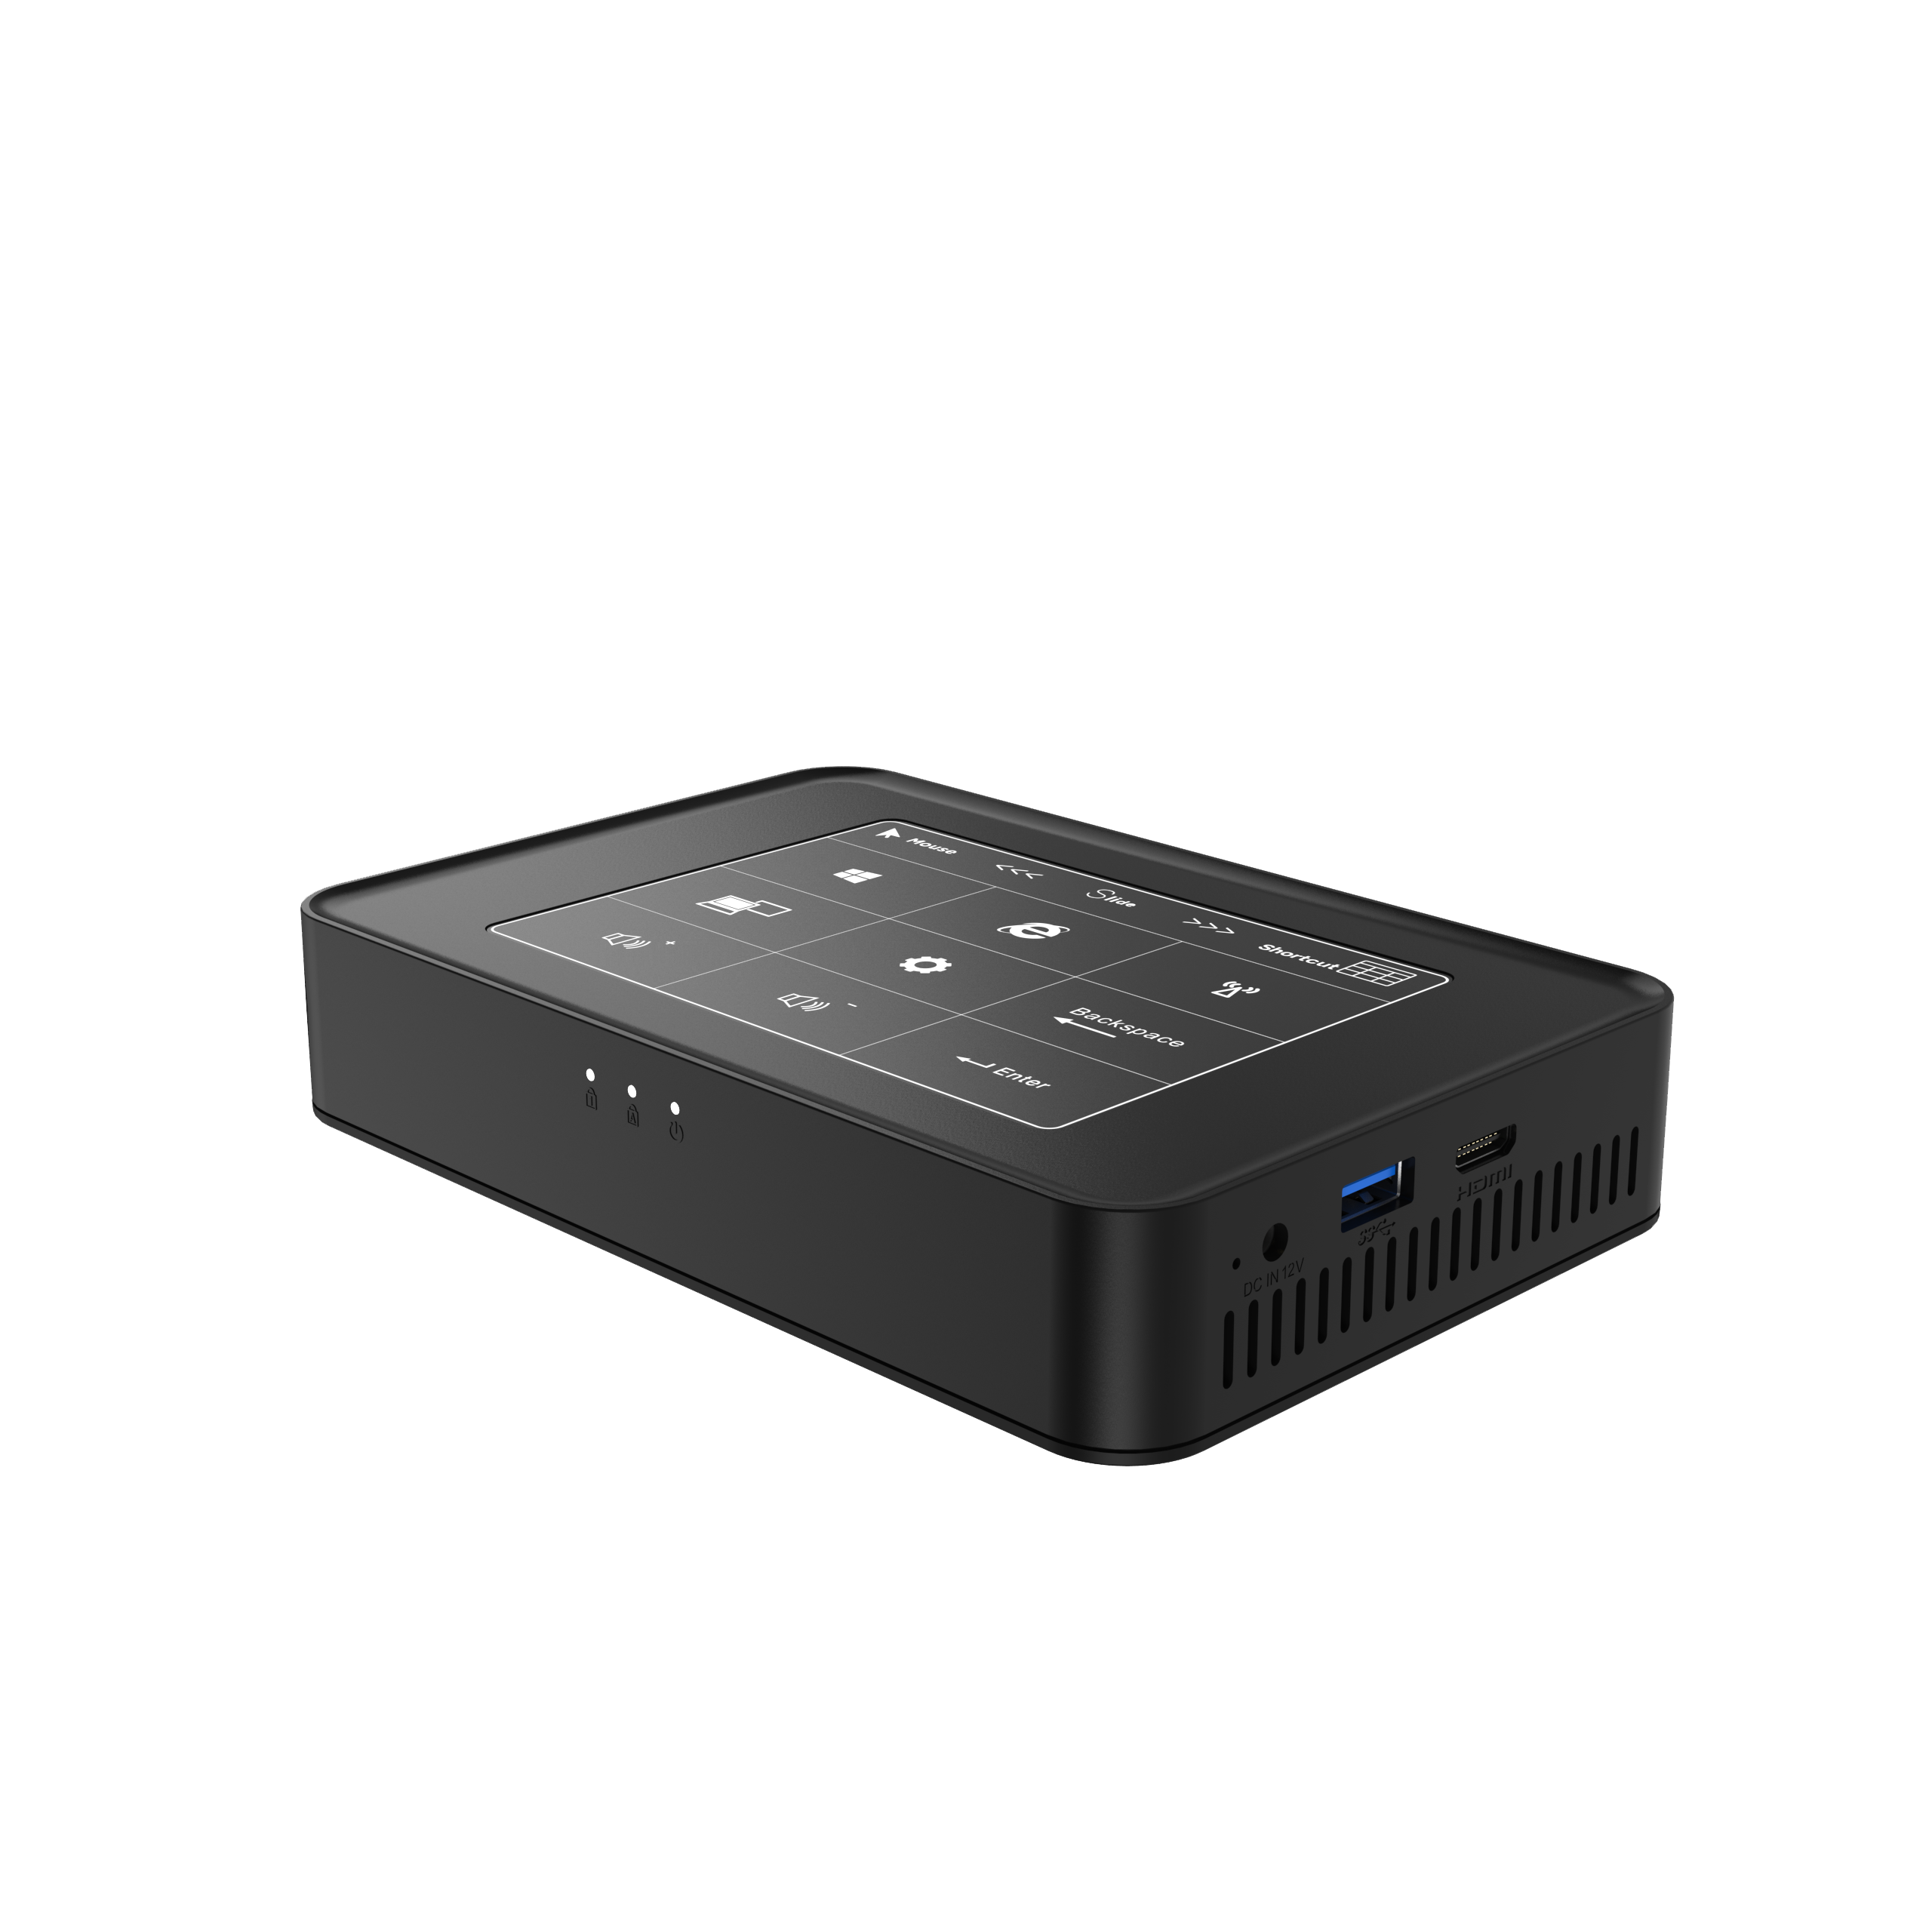 New Celeron J3455 LPDDR3L 6G SSD 128G Windows 10 Mini Pc HTPC With Touch Control Board Panel Win10 Desktop